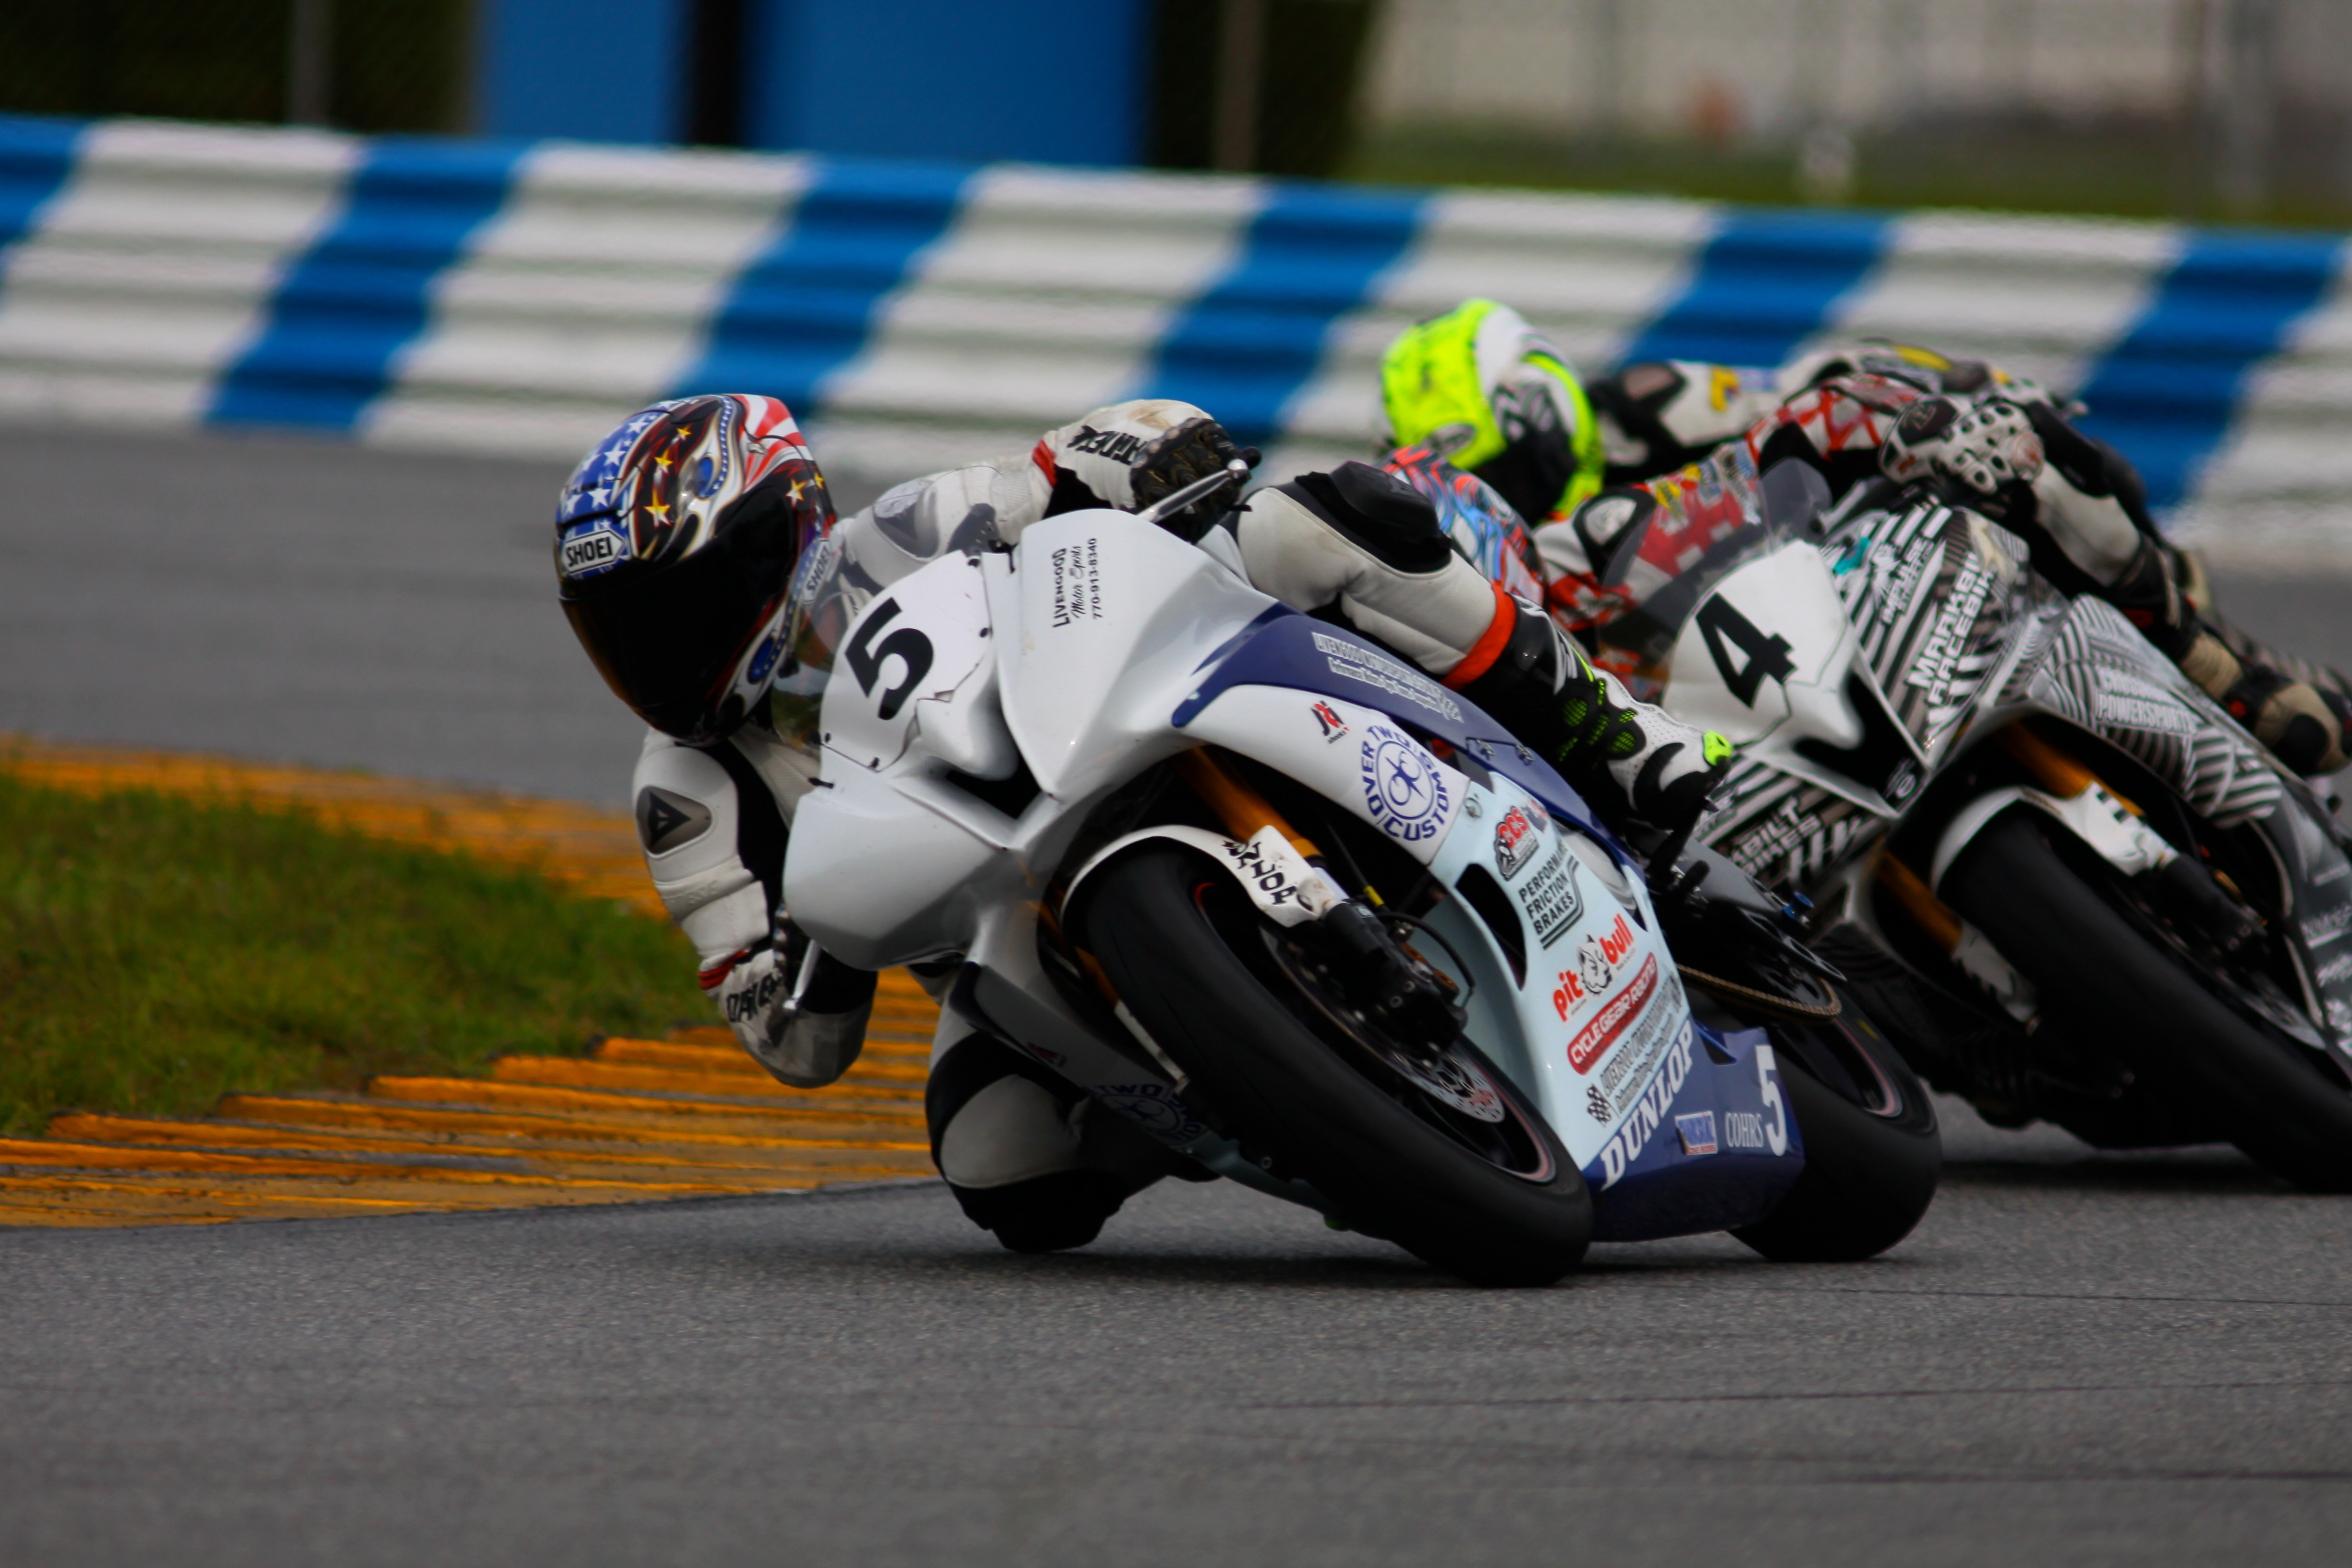 Livengood Motor Sports' Jim Cohrs to compete in AMA Pro SuperSport East Championship